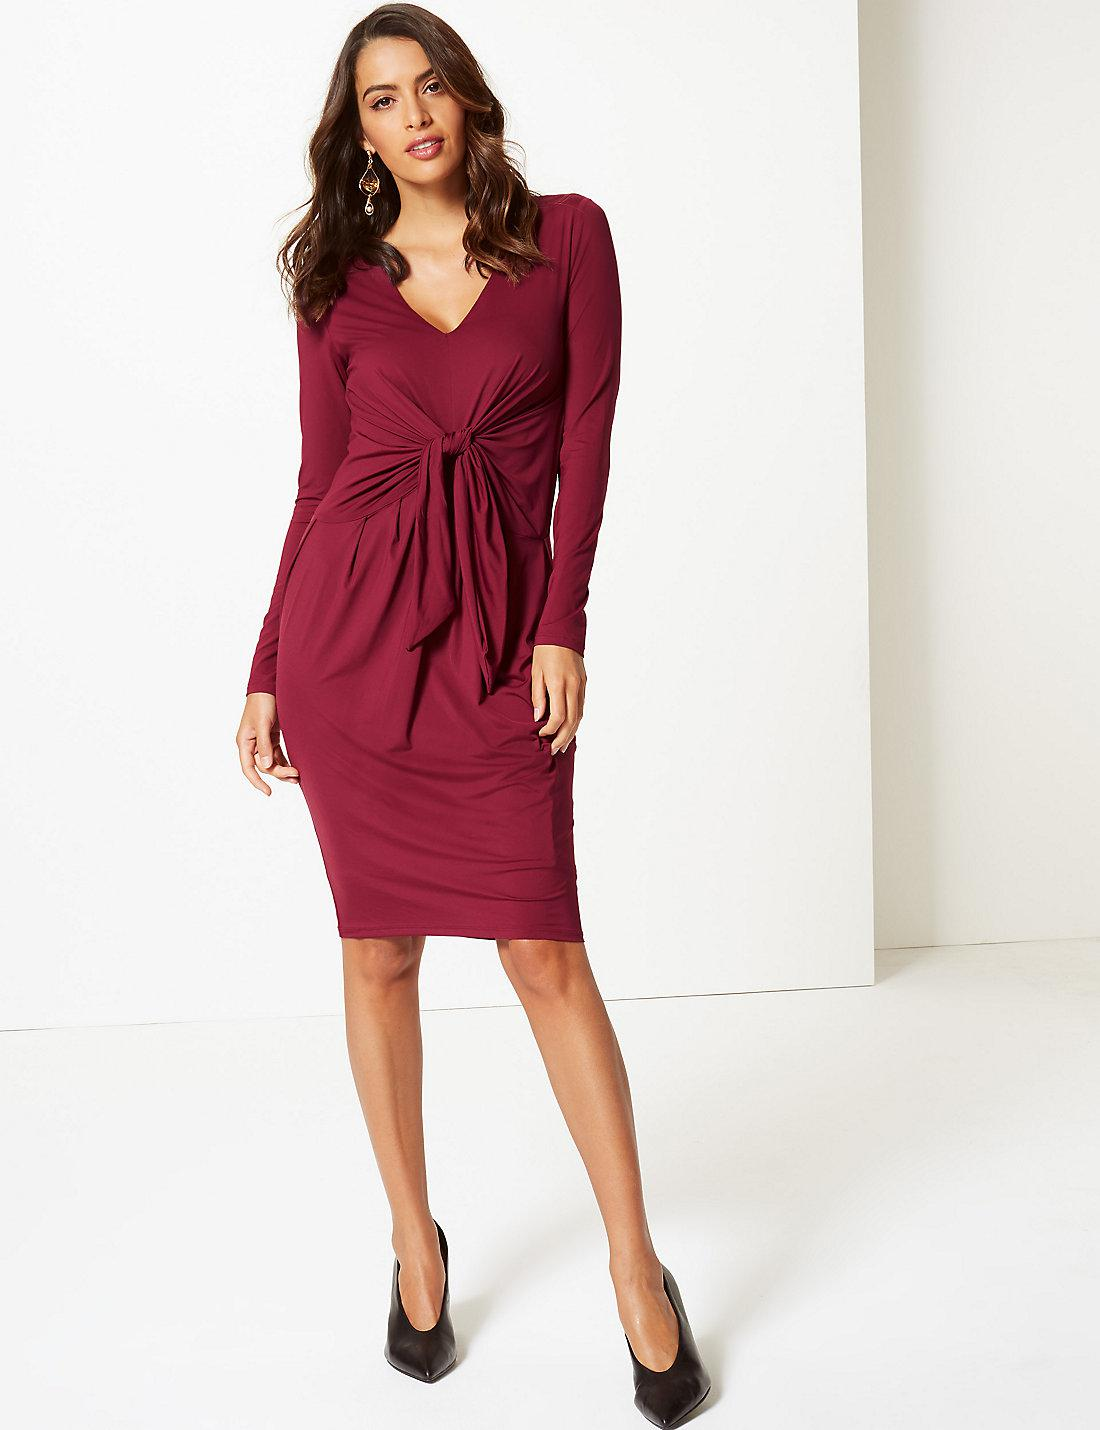 Marks and spencer bodycon dresses under 5